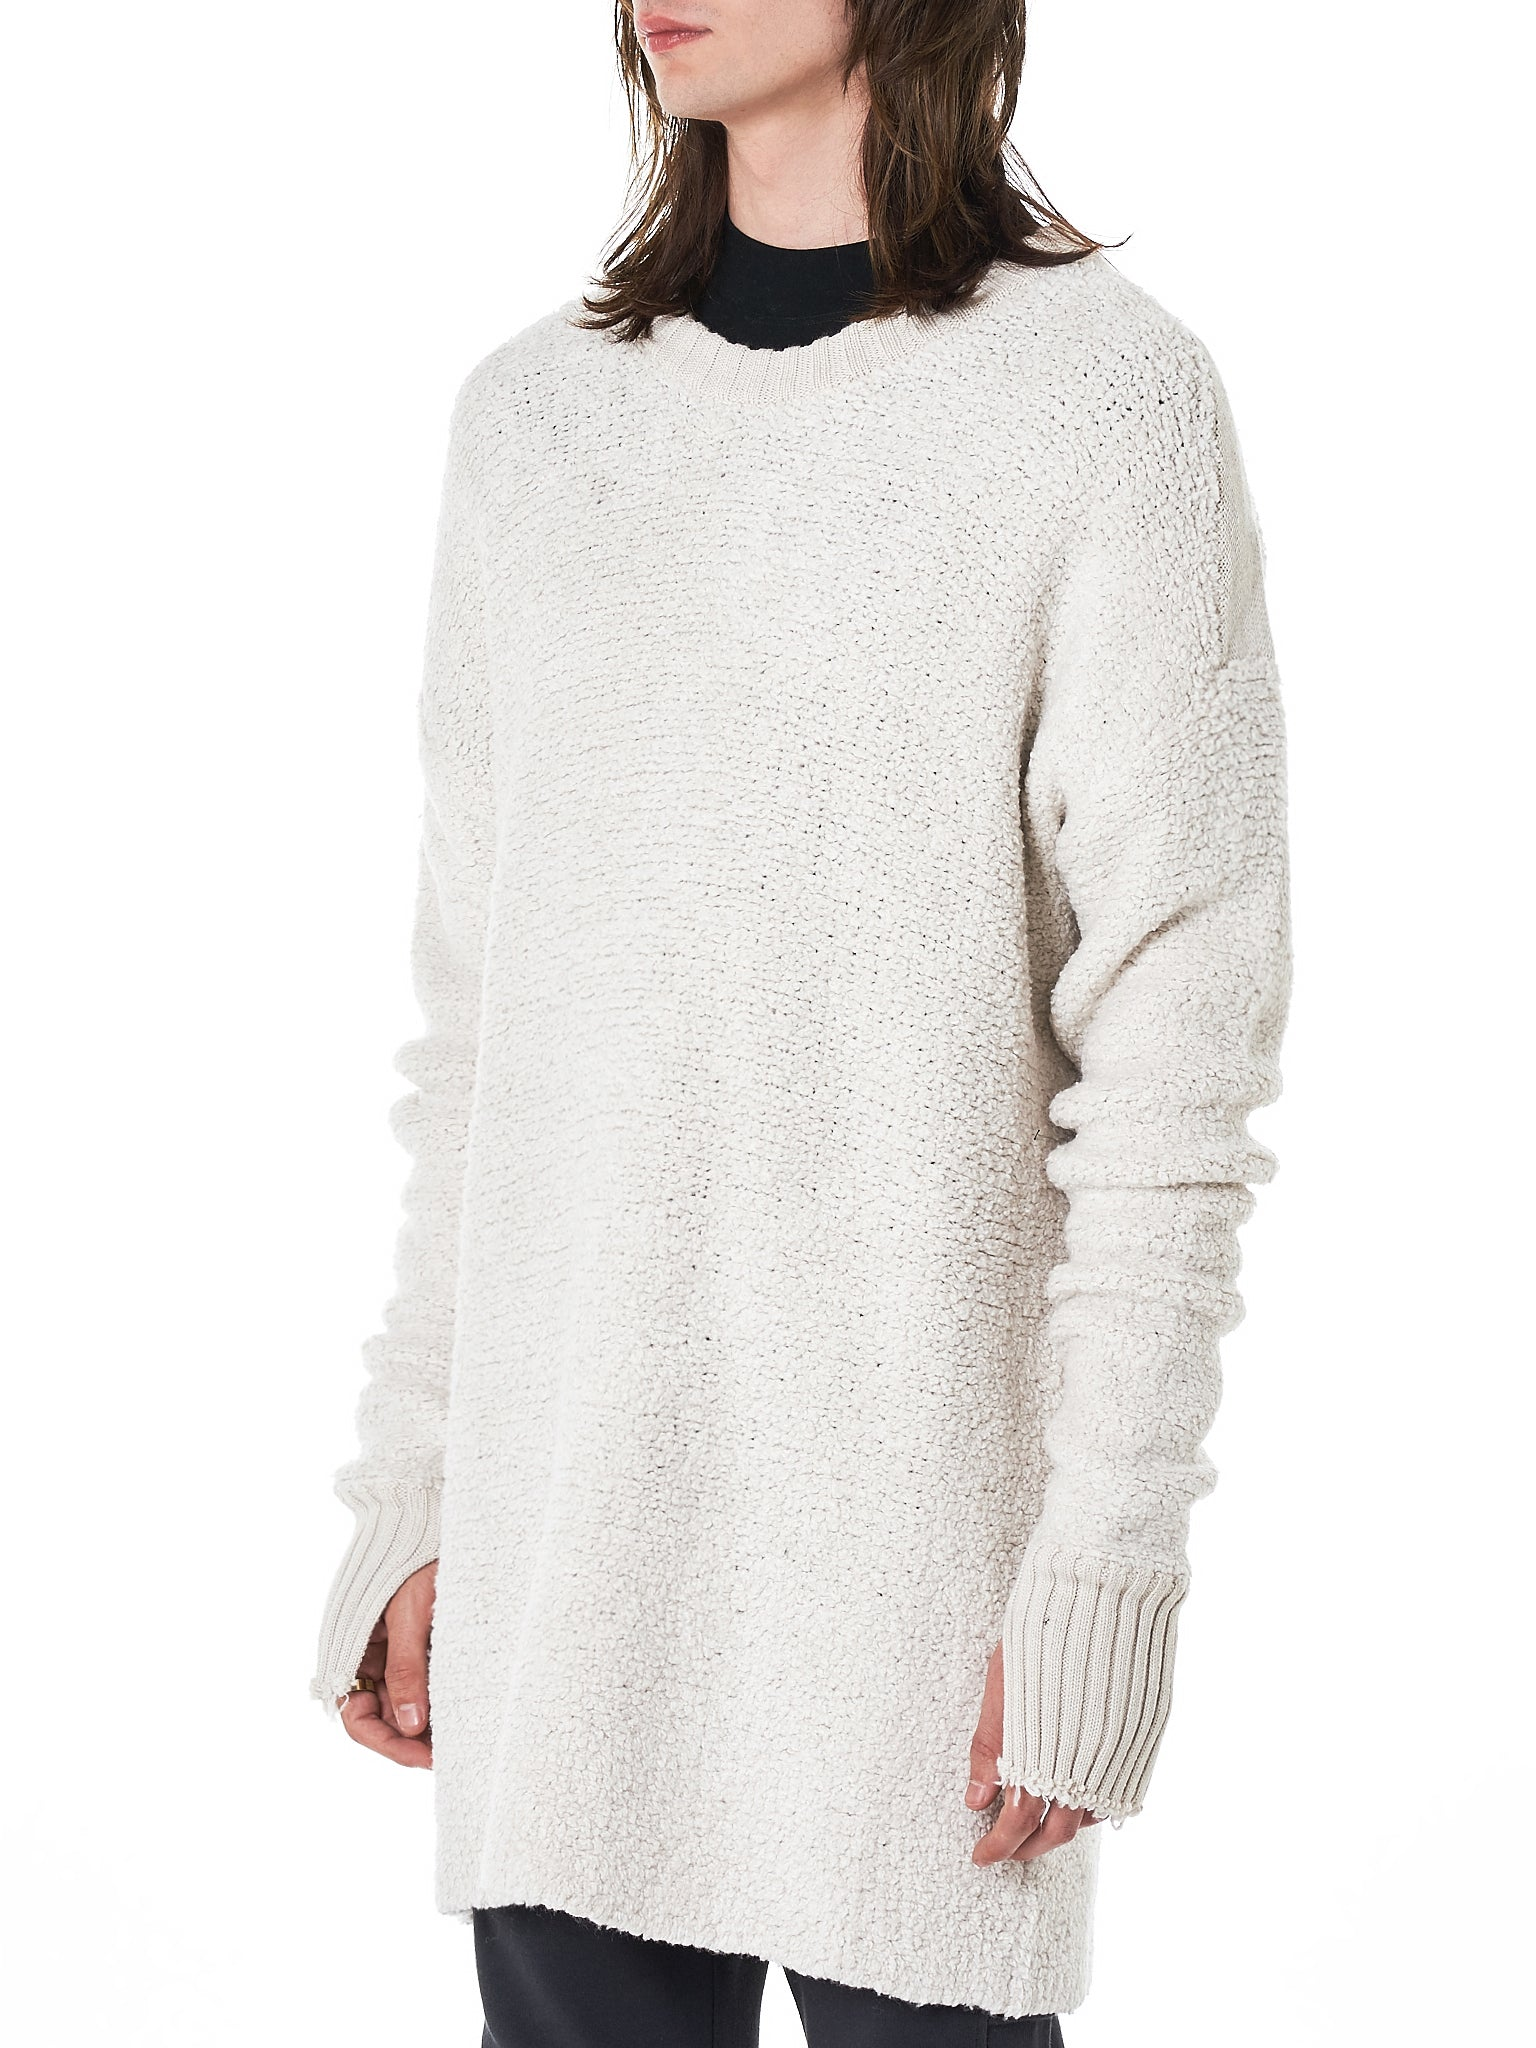 Lost & Found Rooms Sweater - Hlorenzo Side